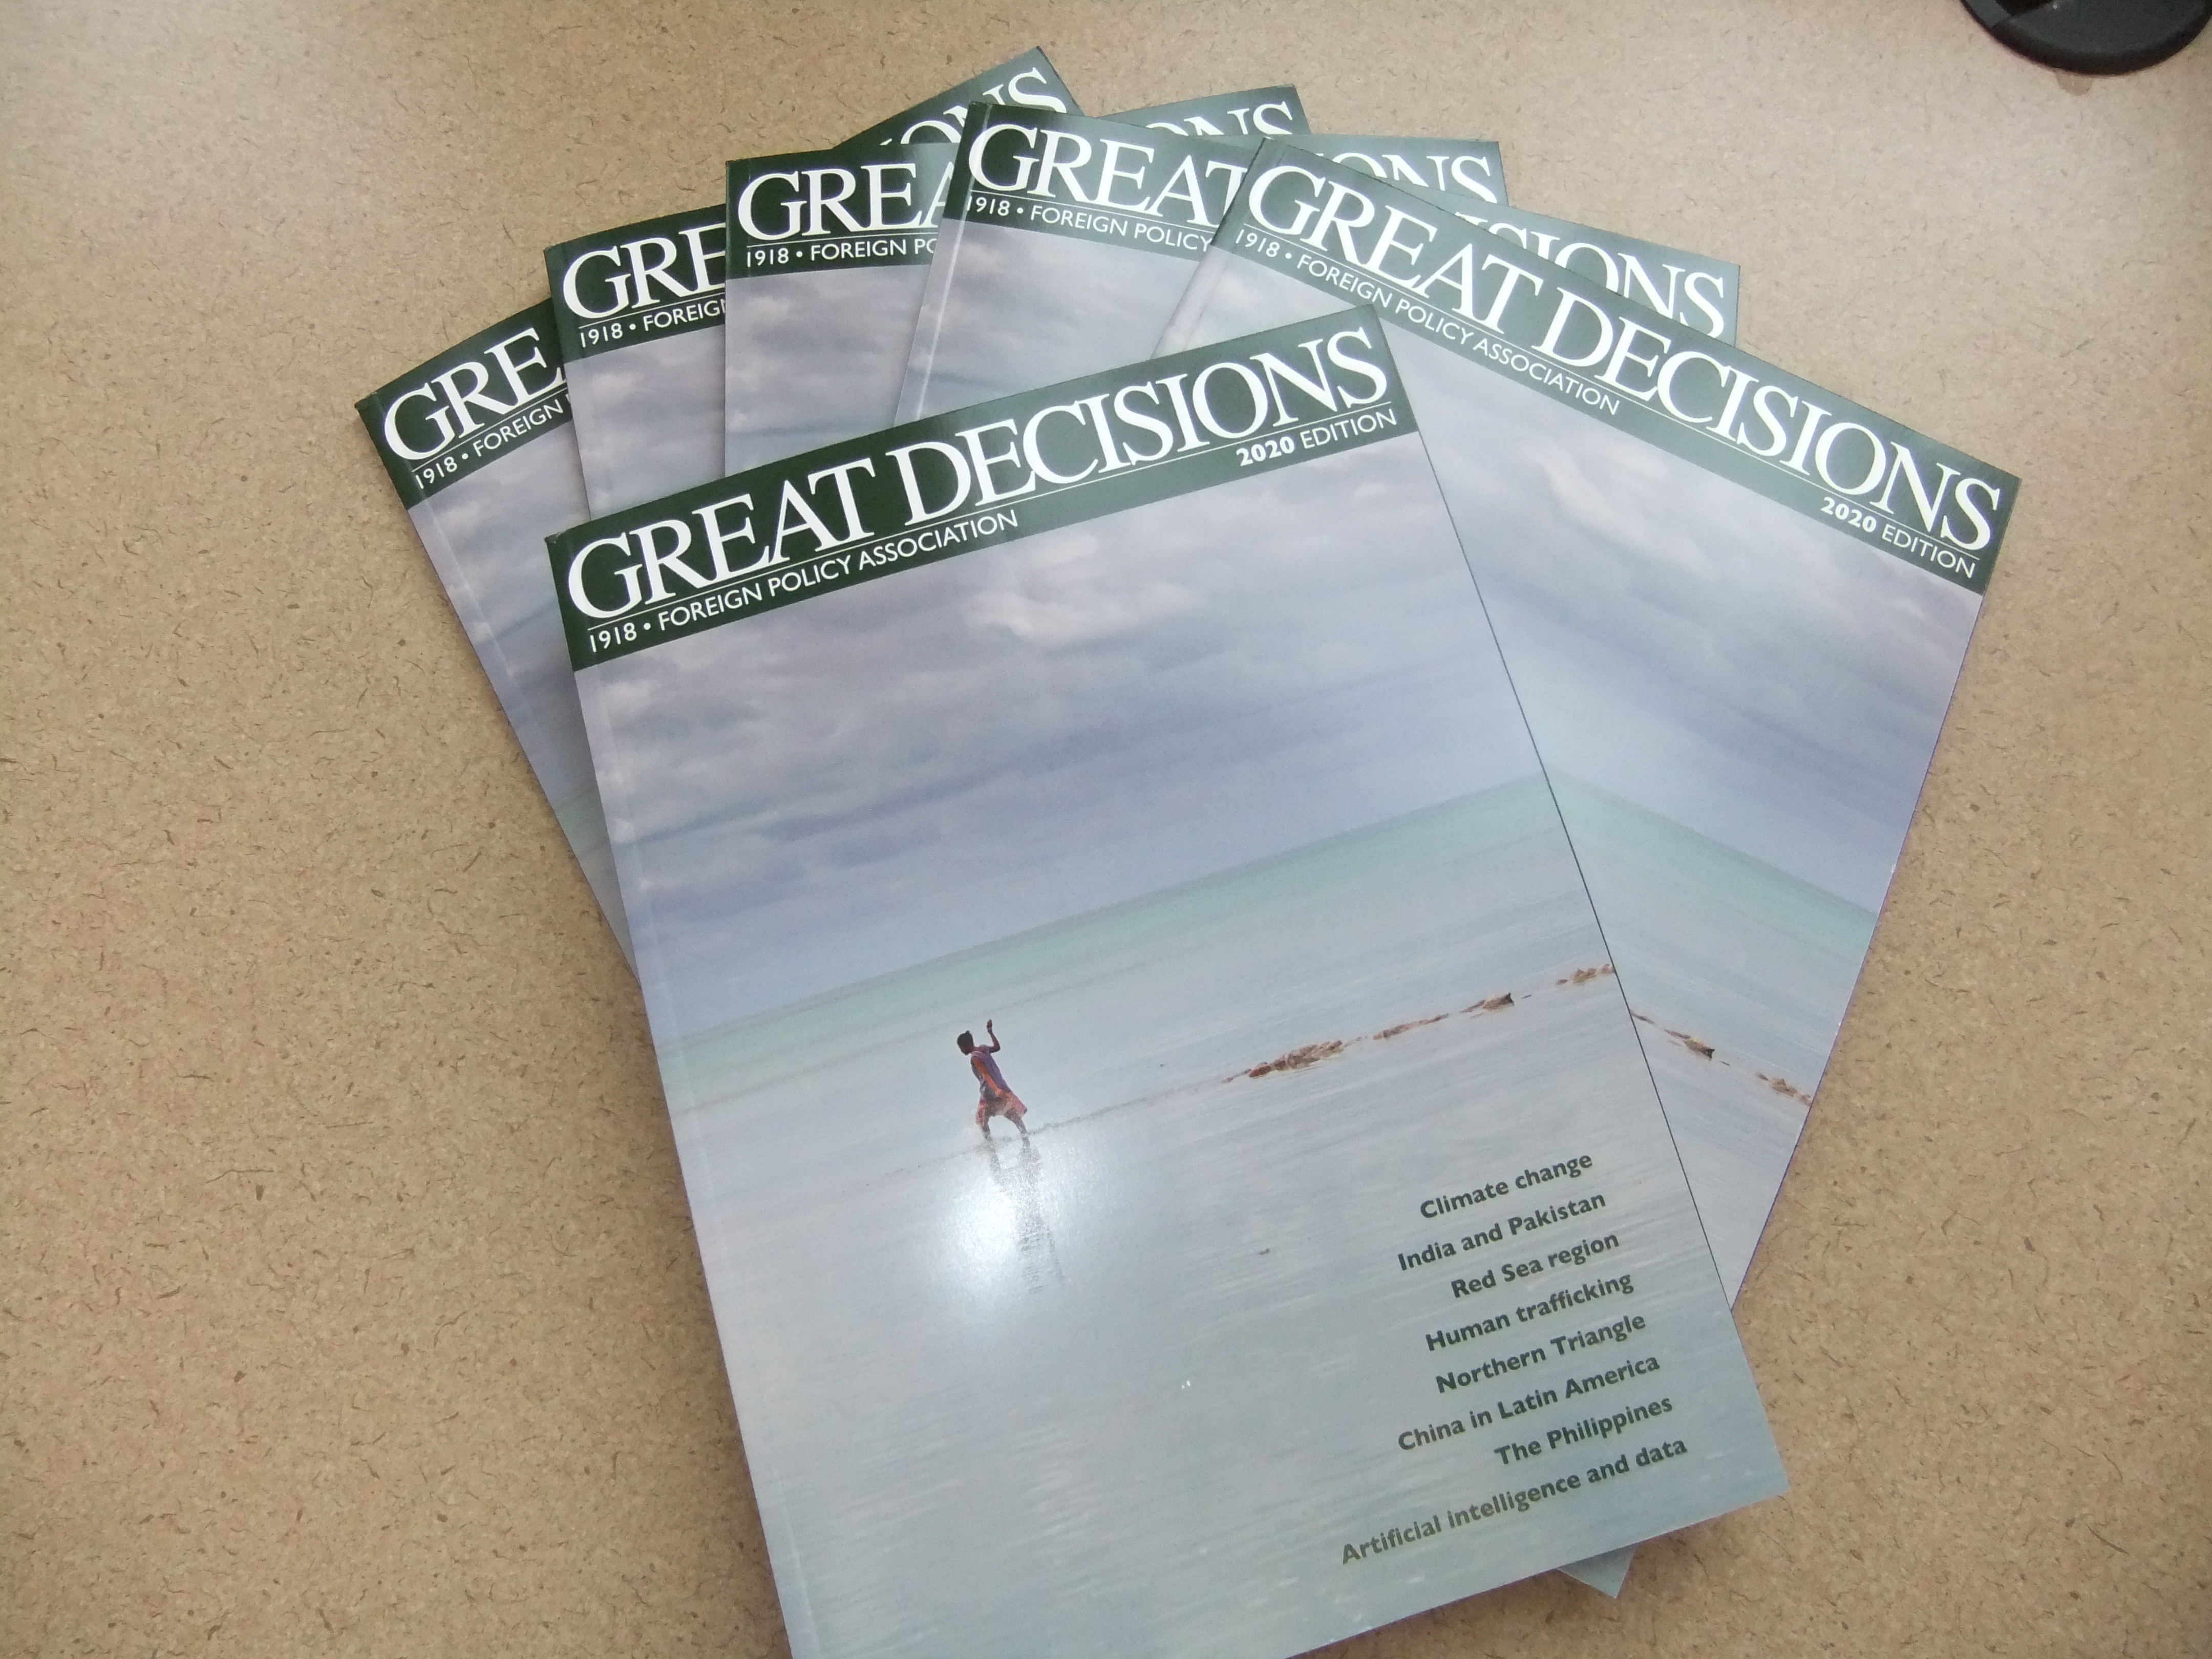 Great Decisions book